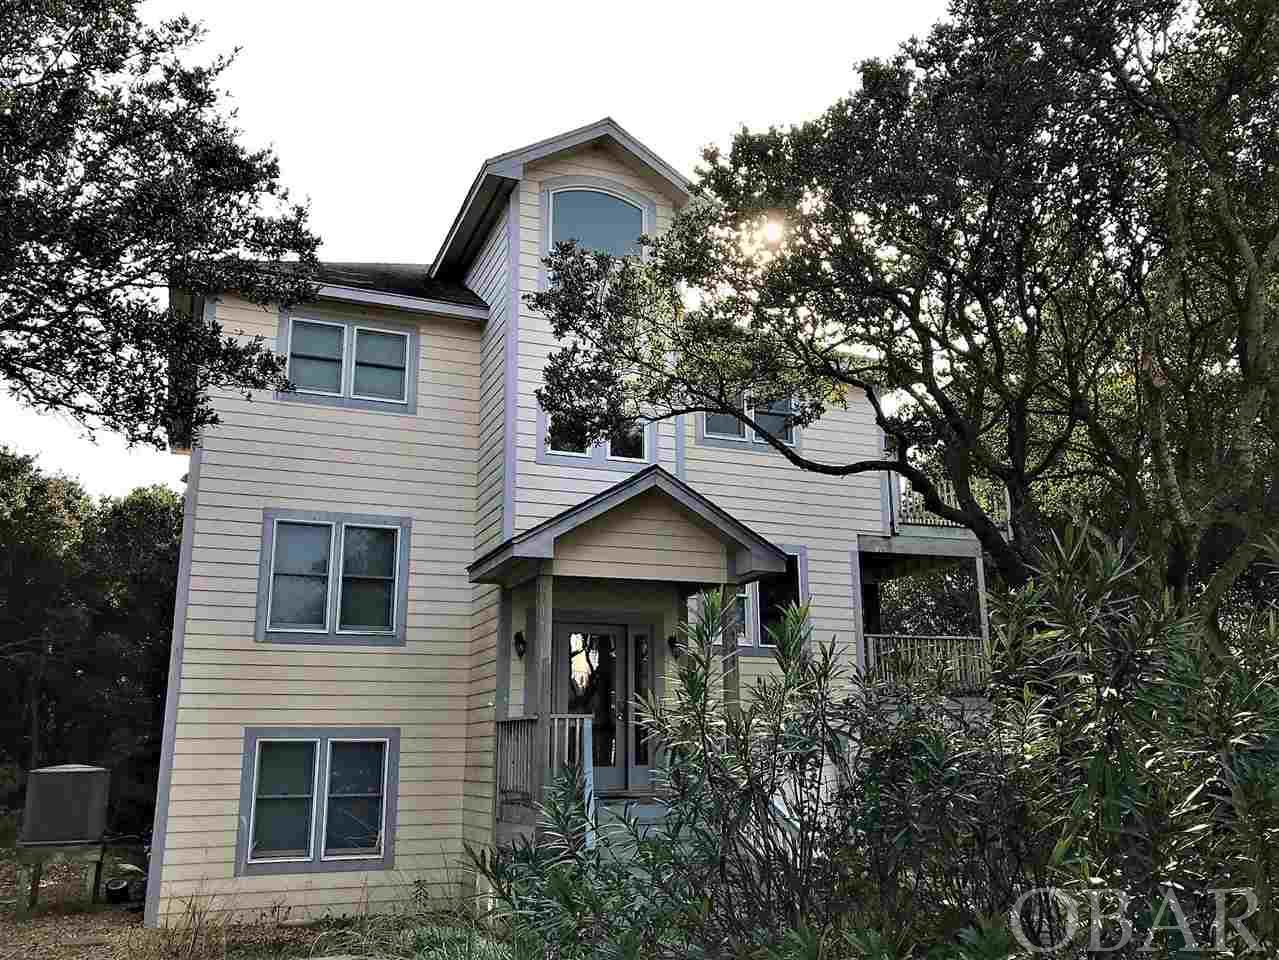 904 Emerald Court Lot 72 Outer Banks Home Listings - Holleay Parcker - Spinnaker Realty Outer Banks (OBX) Real Estate